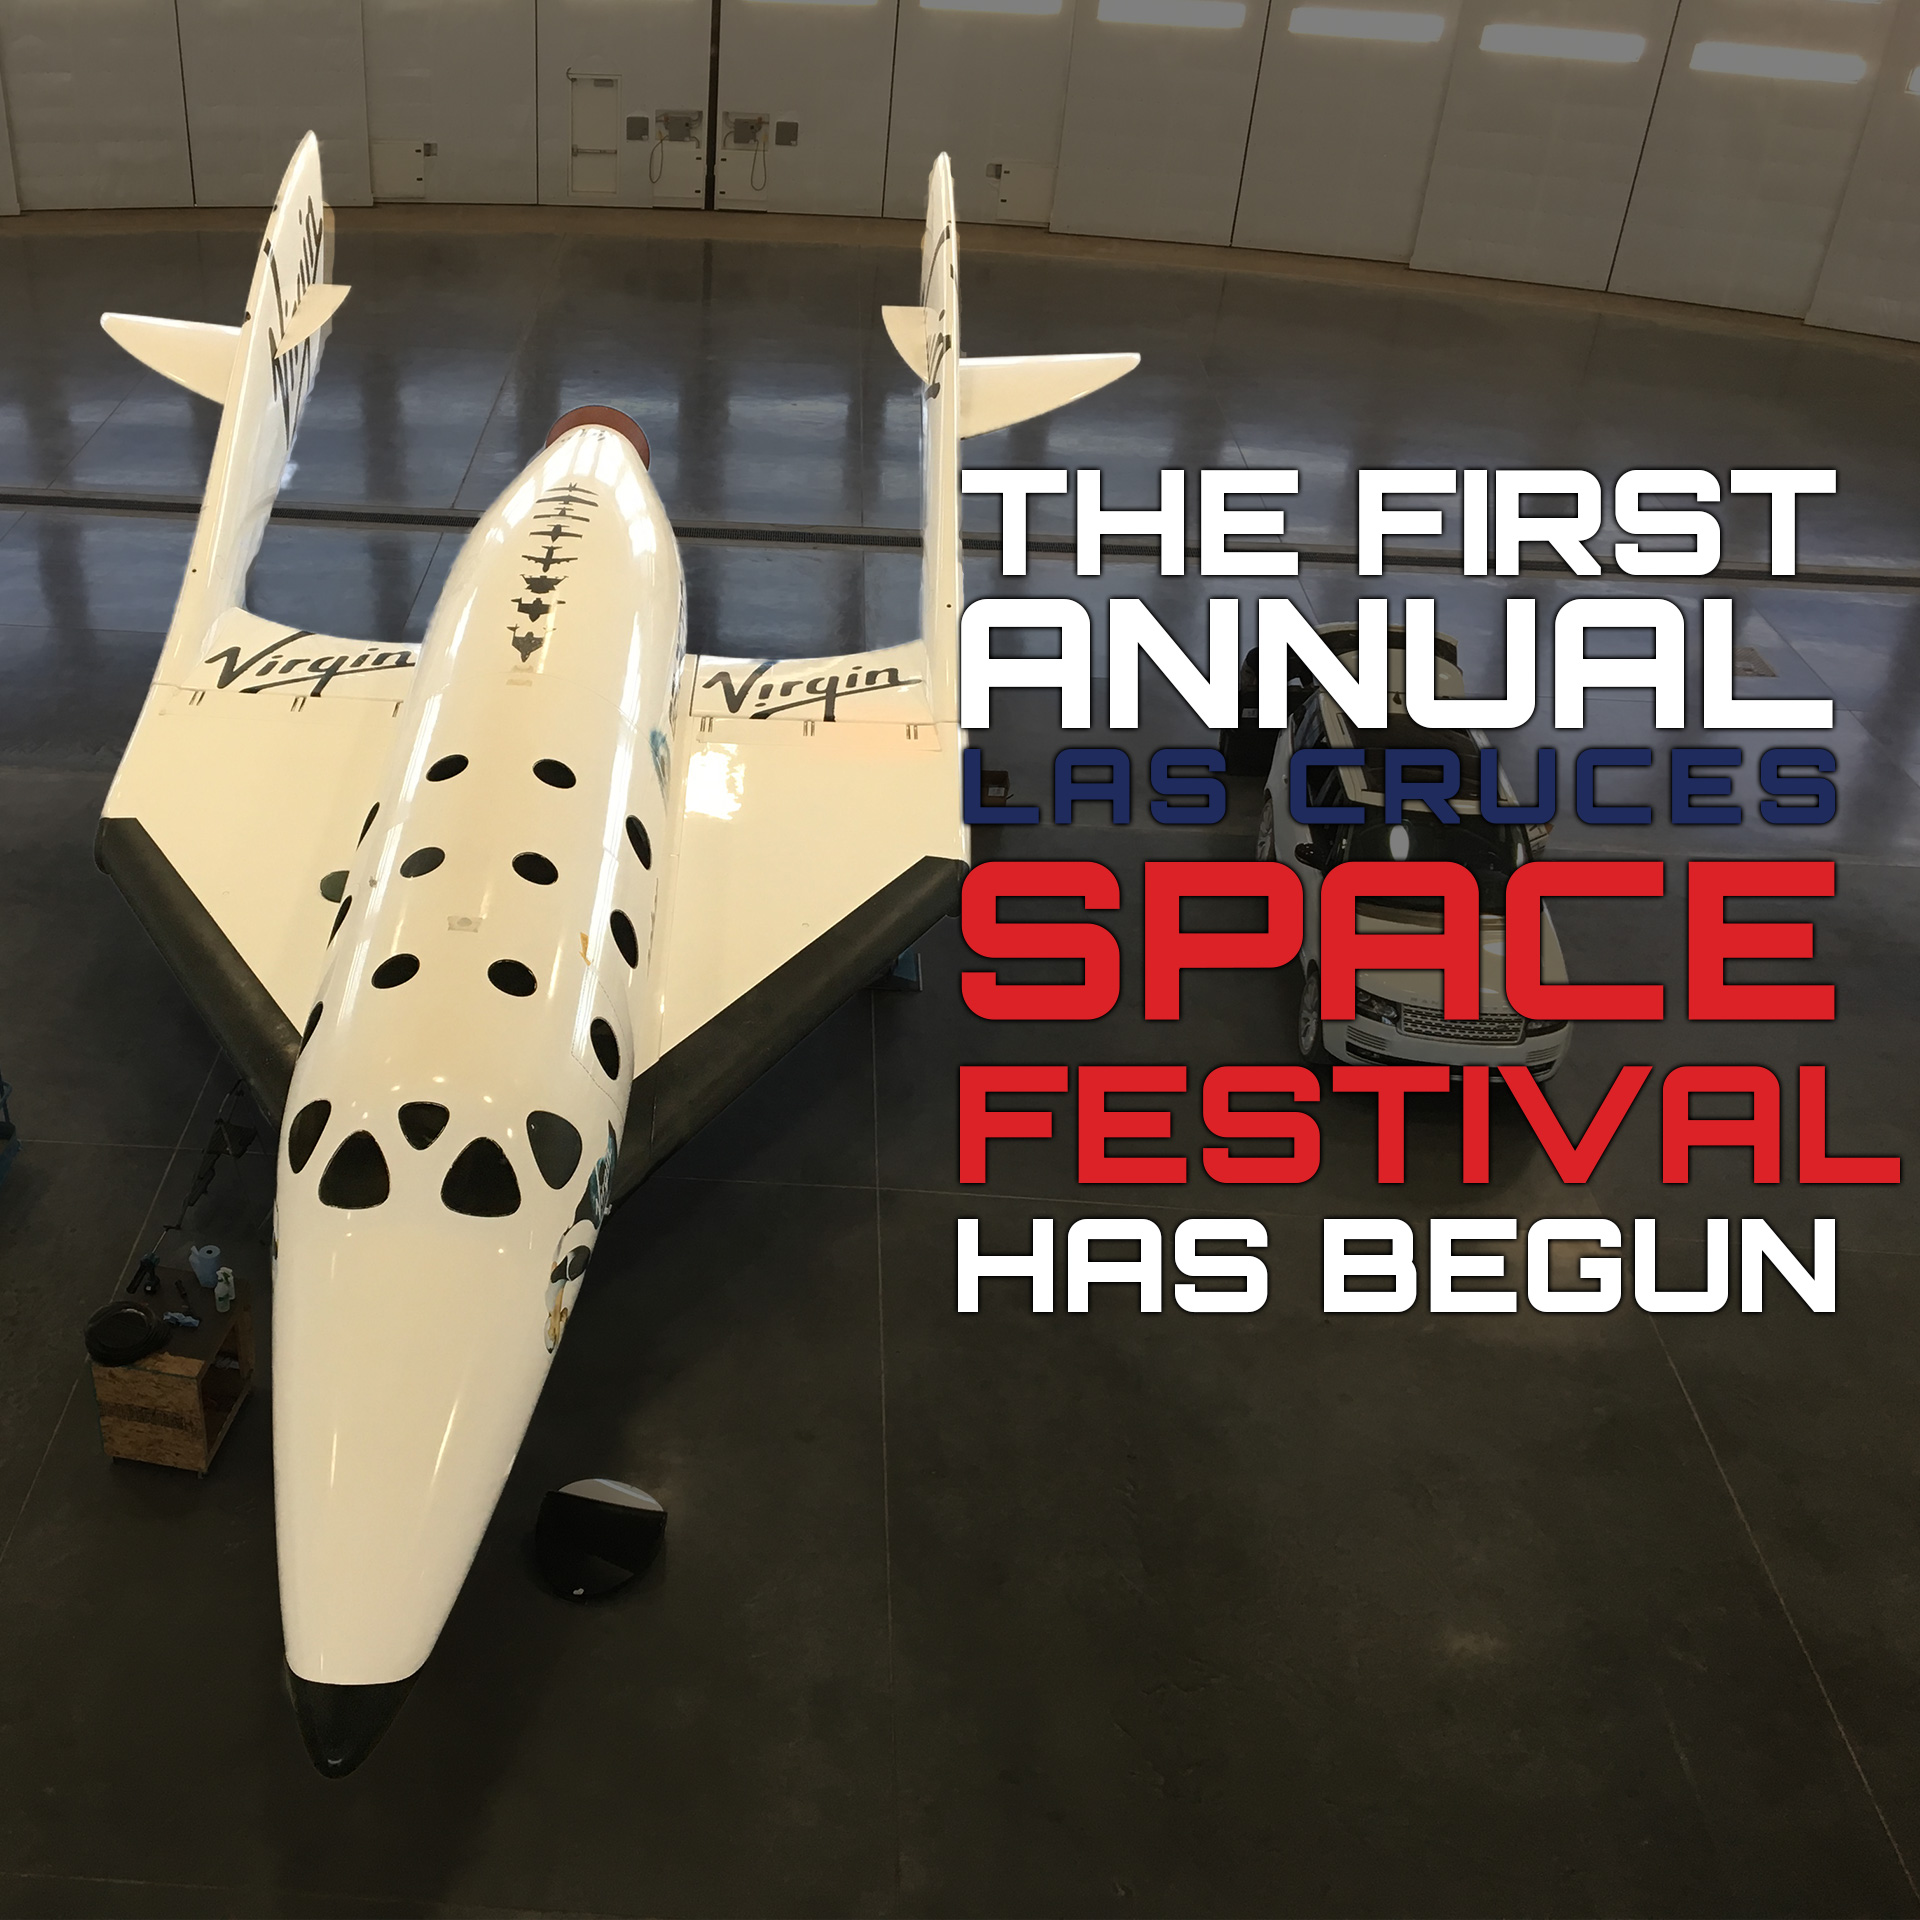 The First Las Cruces Space Festival Has Started!